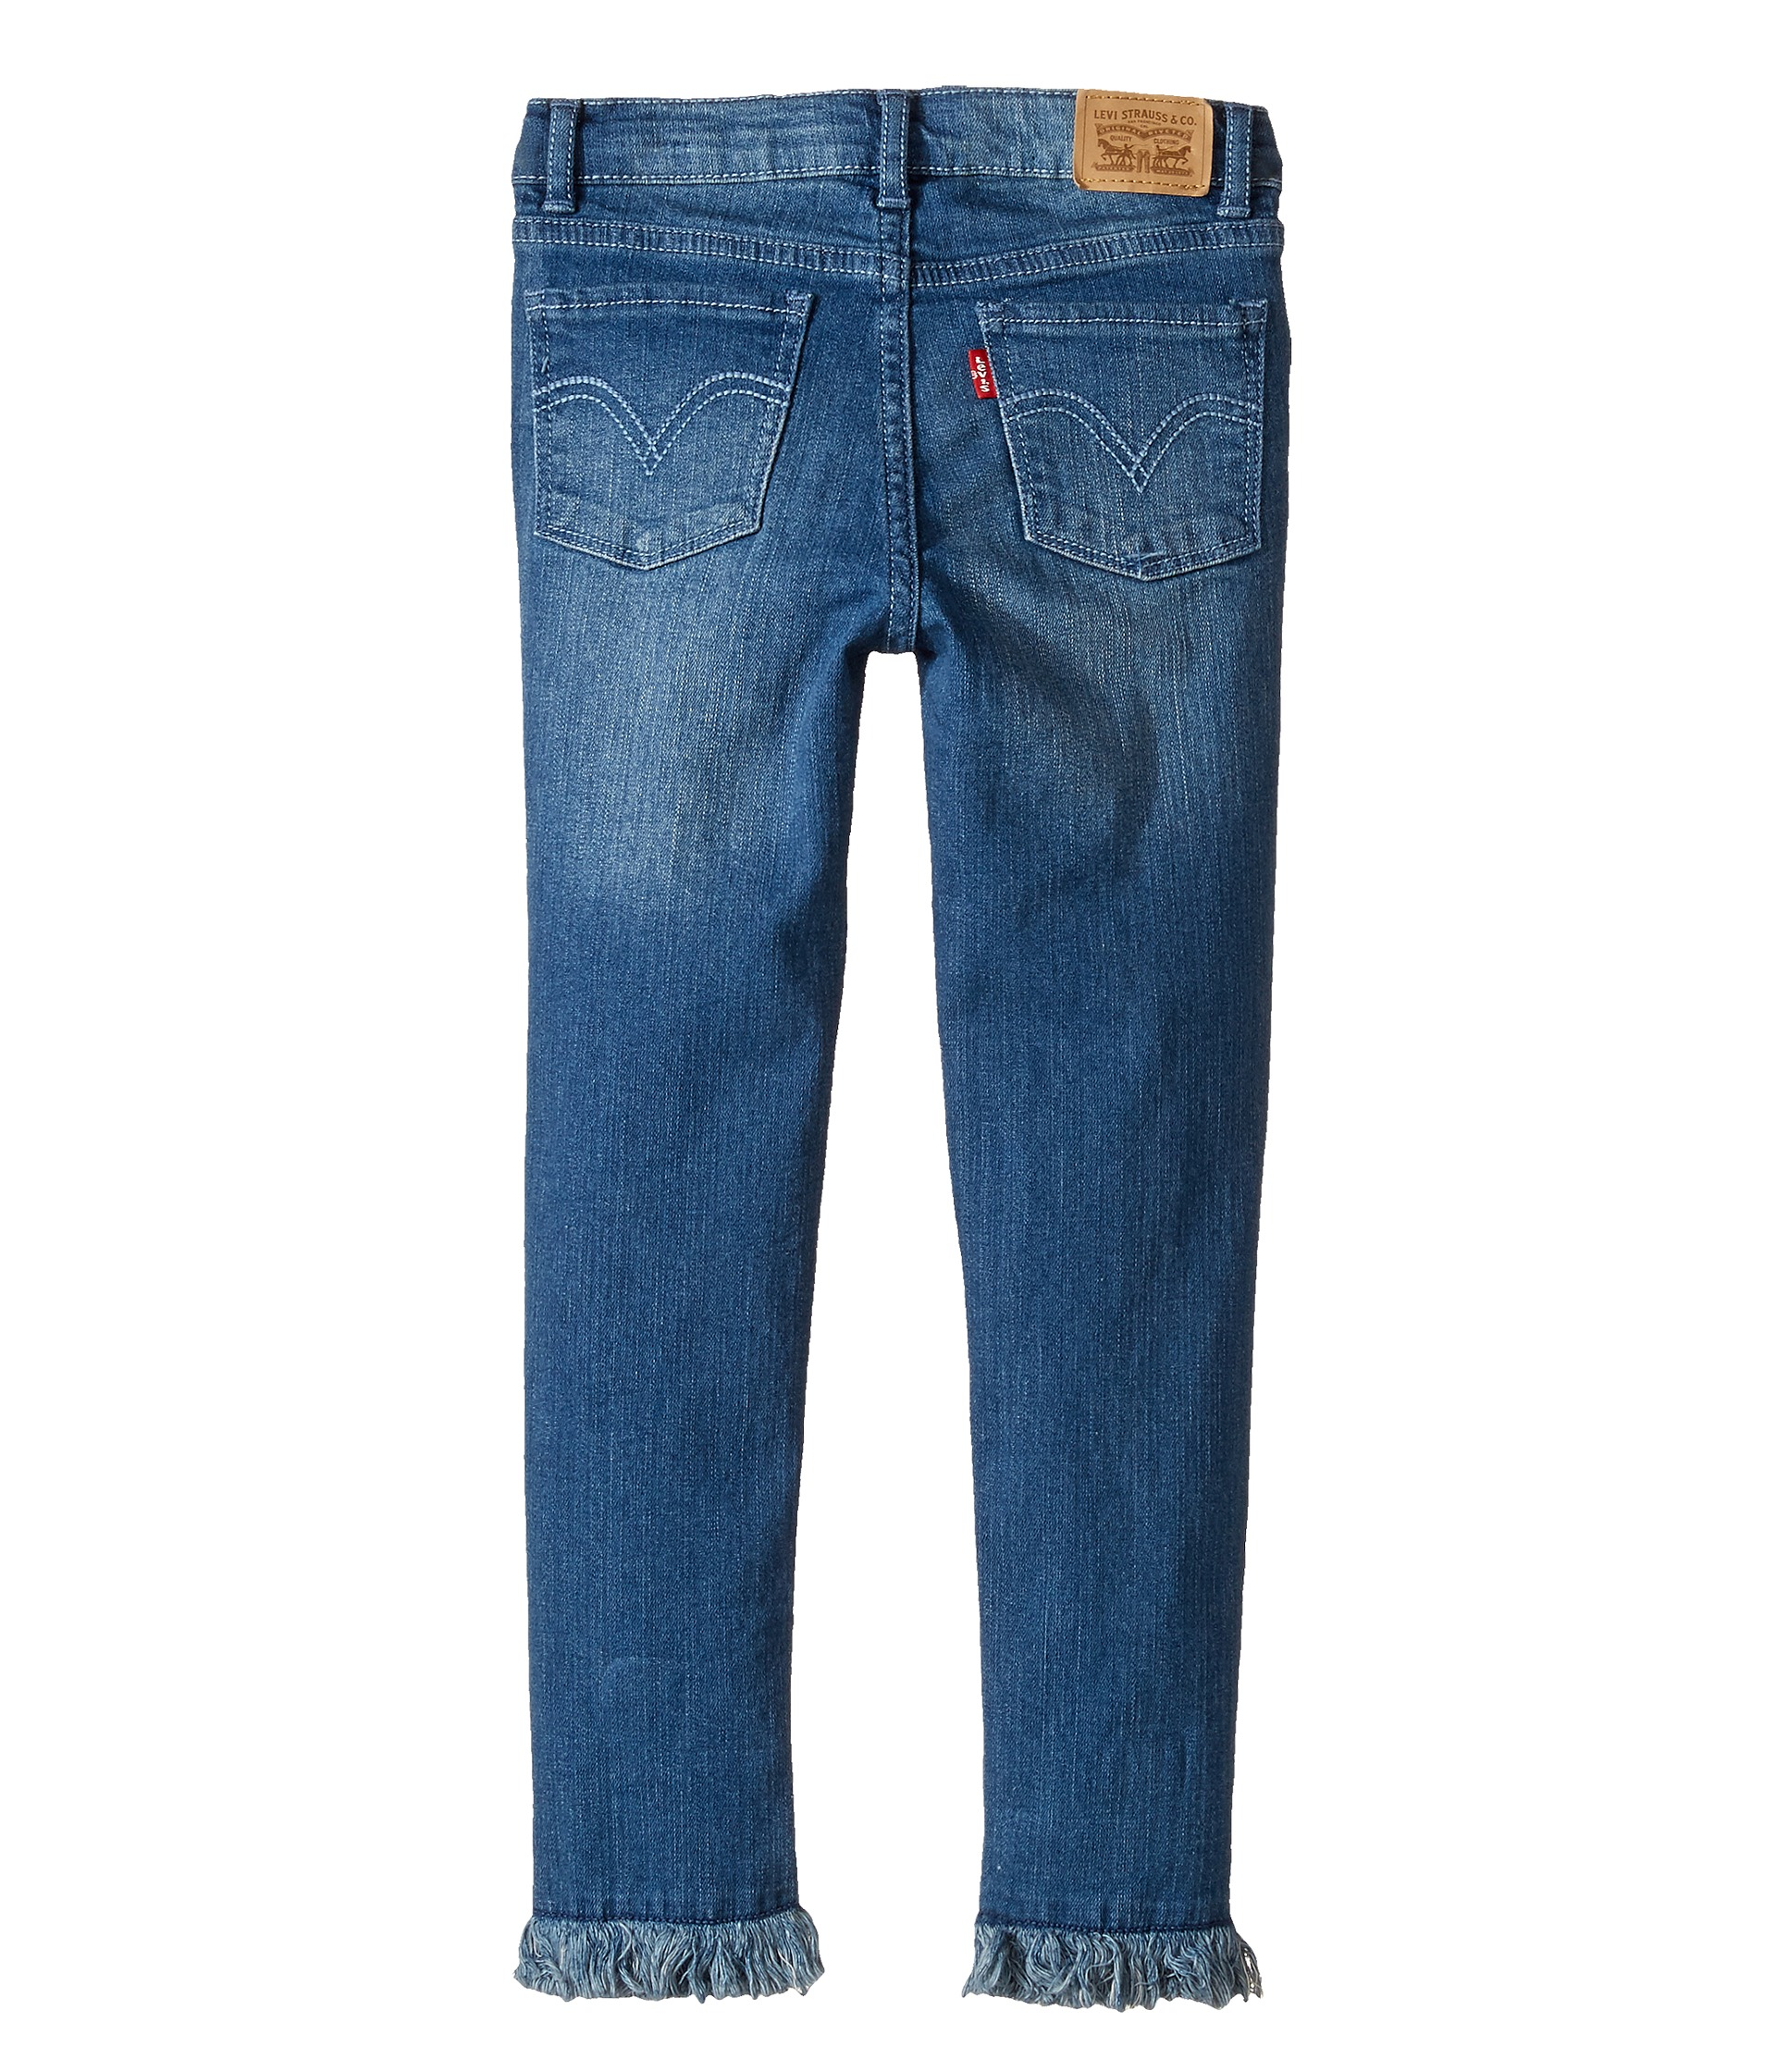 Shop a great selection of HUDSON Jeans at Nordstrom Rack. Find designer HUDSON Jeans up to 70% off and get free shipping on orders over $